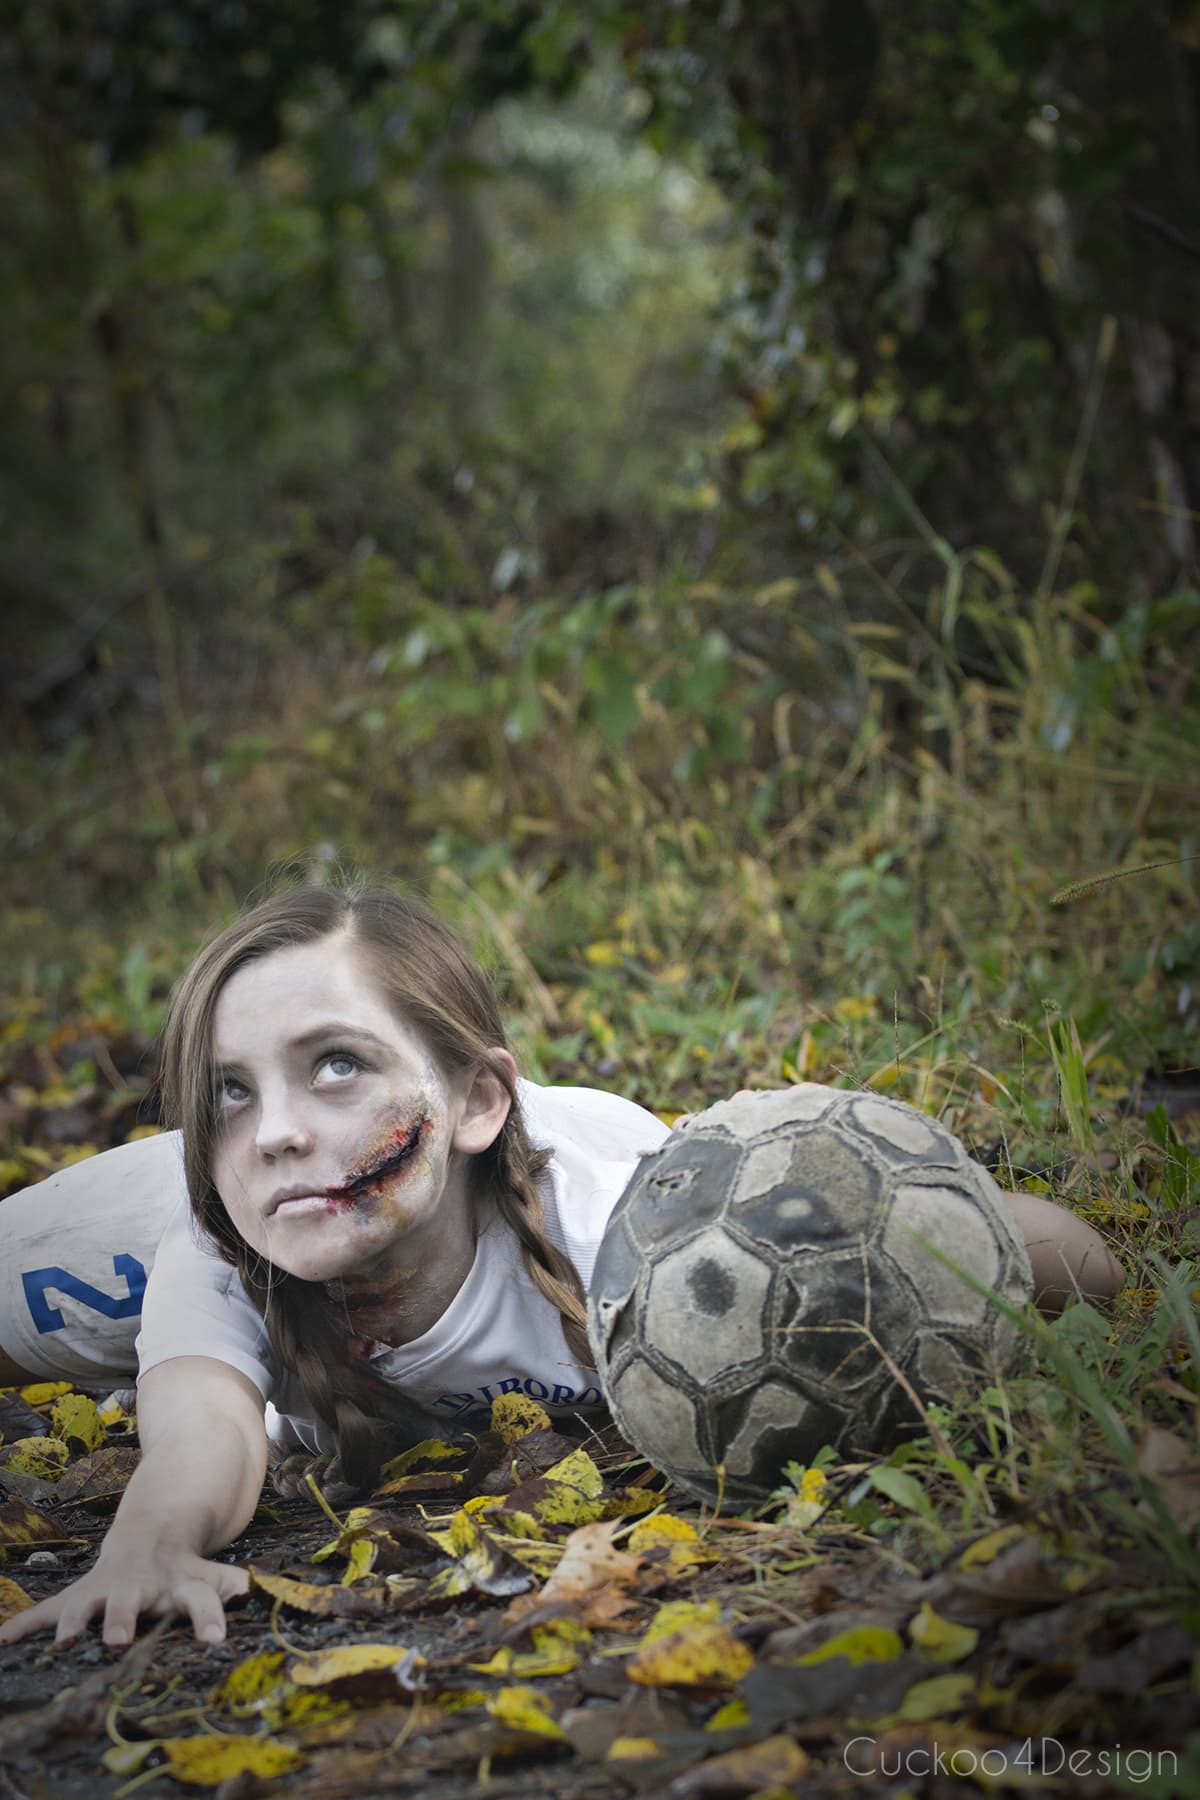 easy tutorial on how to make creepy zombie makeup with some easy to follow steps. If you can decoupage a craft project than you can make zombie makeup too | kids Halloween makeup | affordable DIY costume | soccer zombie